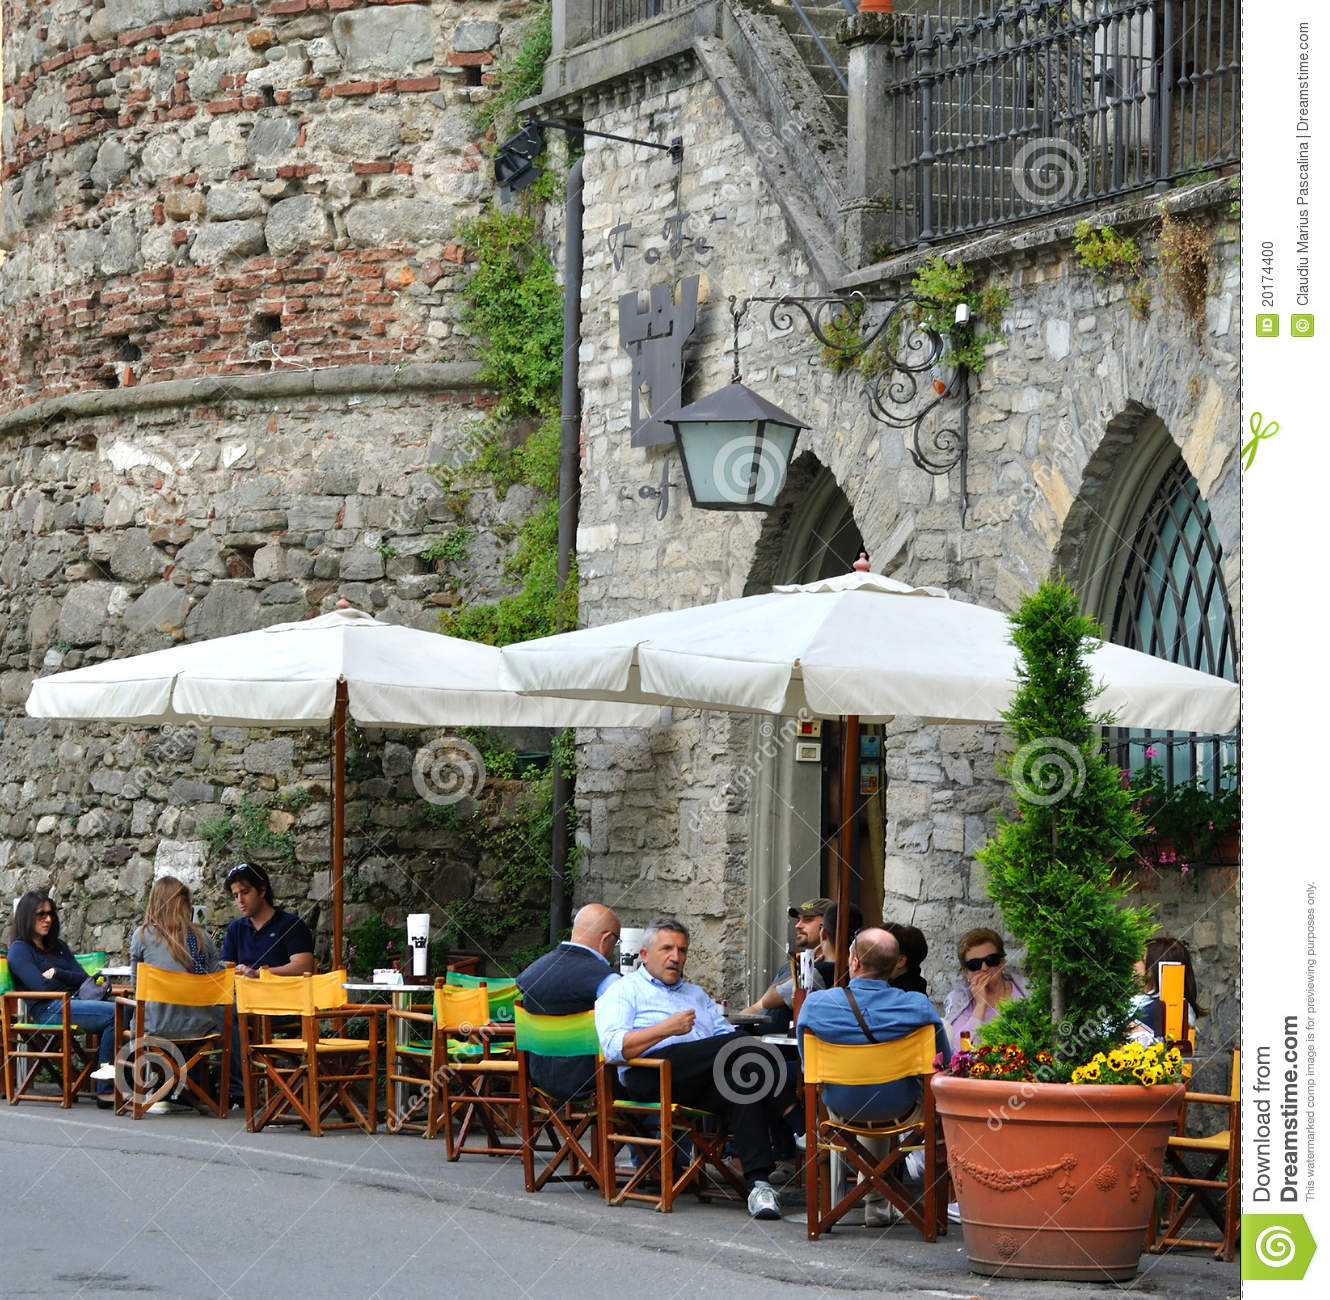 Street Cafe editorial image Image of cafeteria building  : street cafe 20174400 from www.dreamstime.com size 1330 x 1300 jpeg 370kB